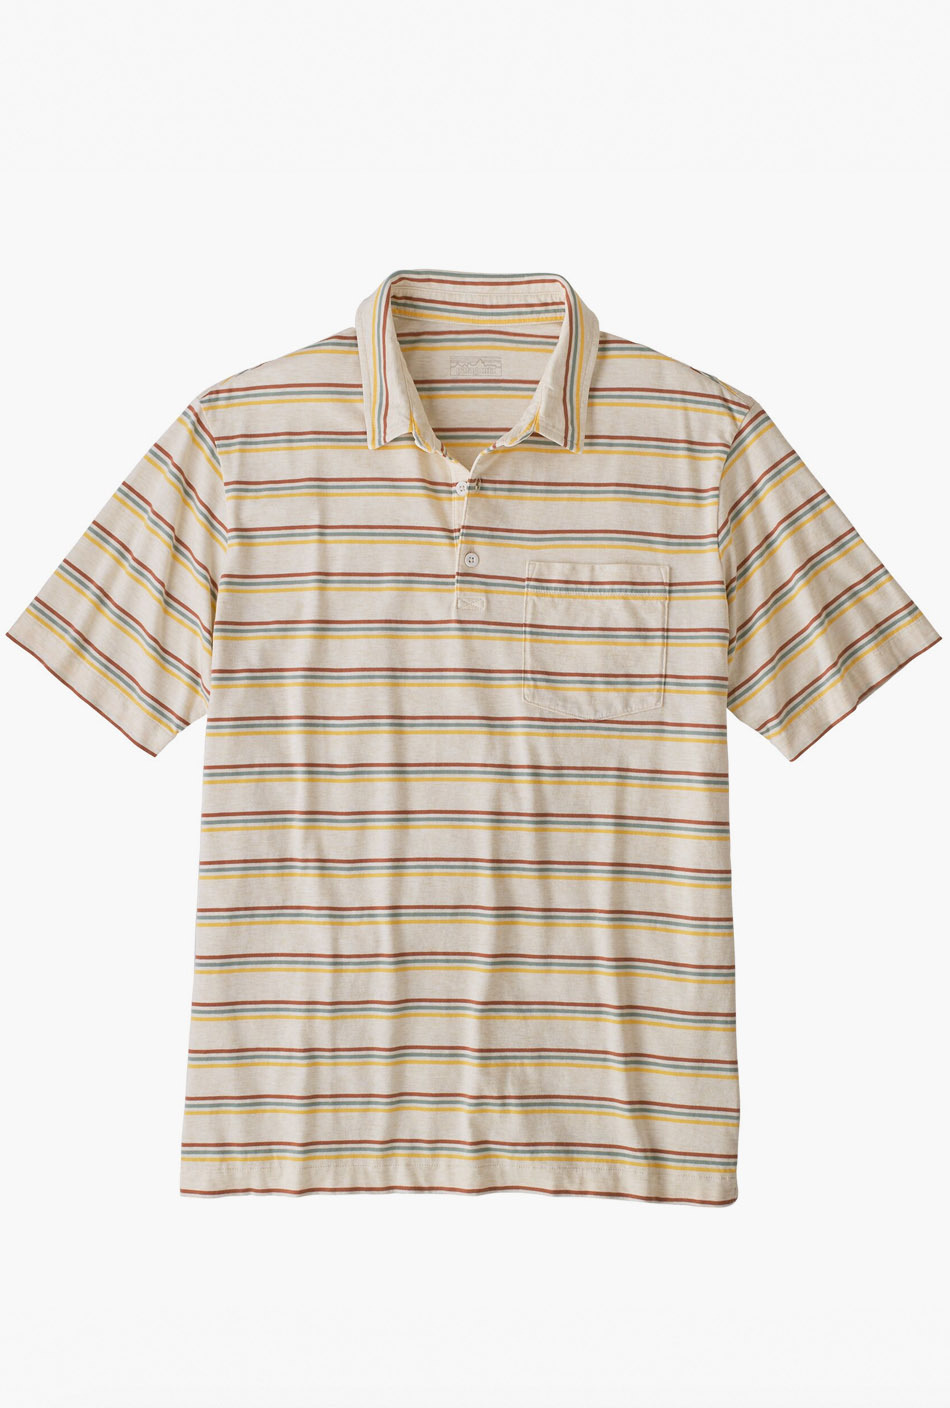 Patagonia Organic Cotton Polo White Wash